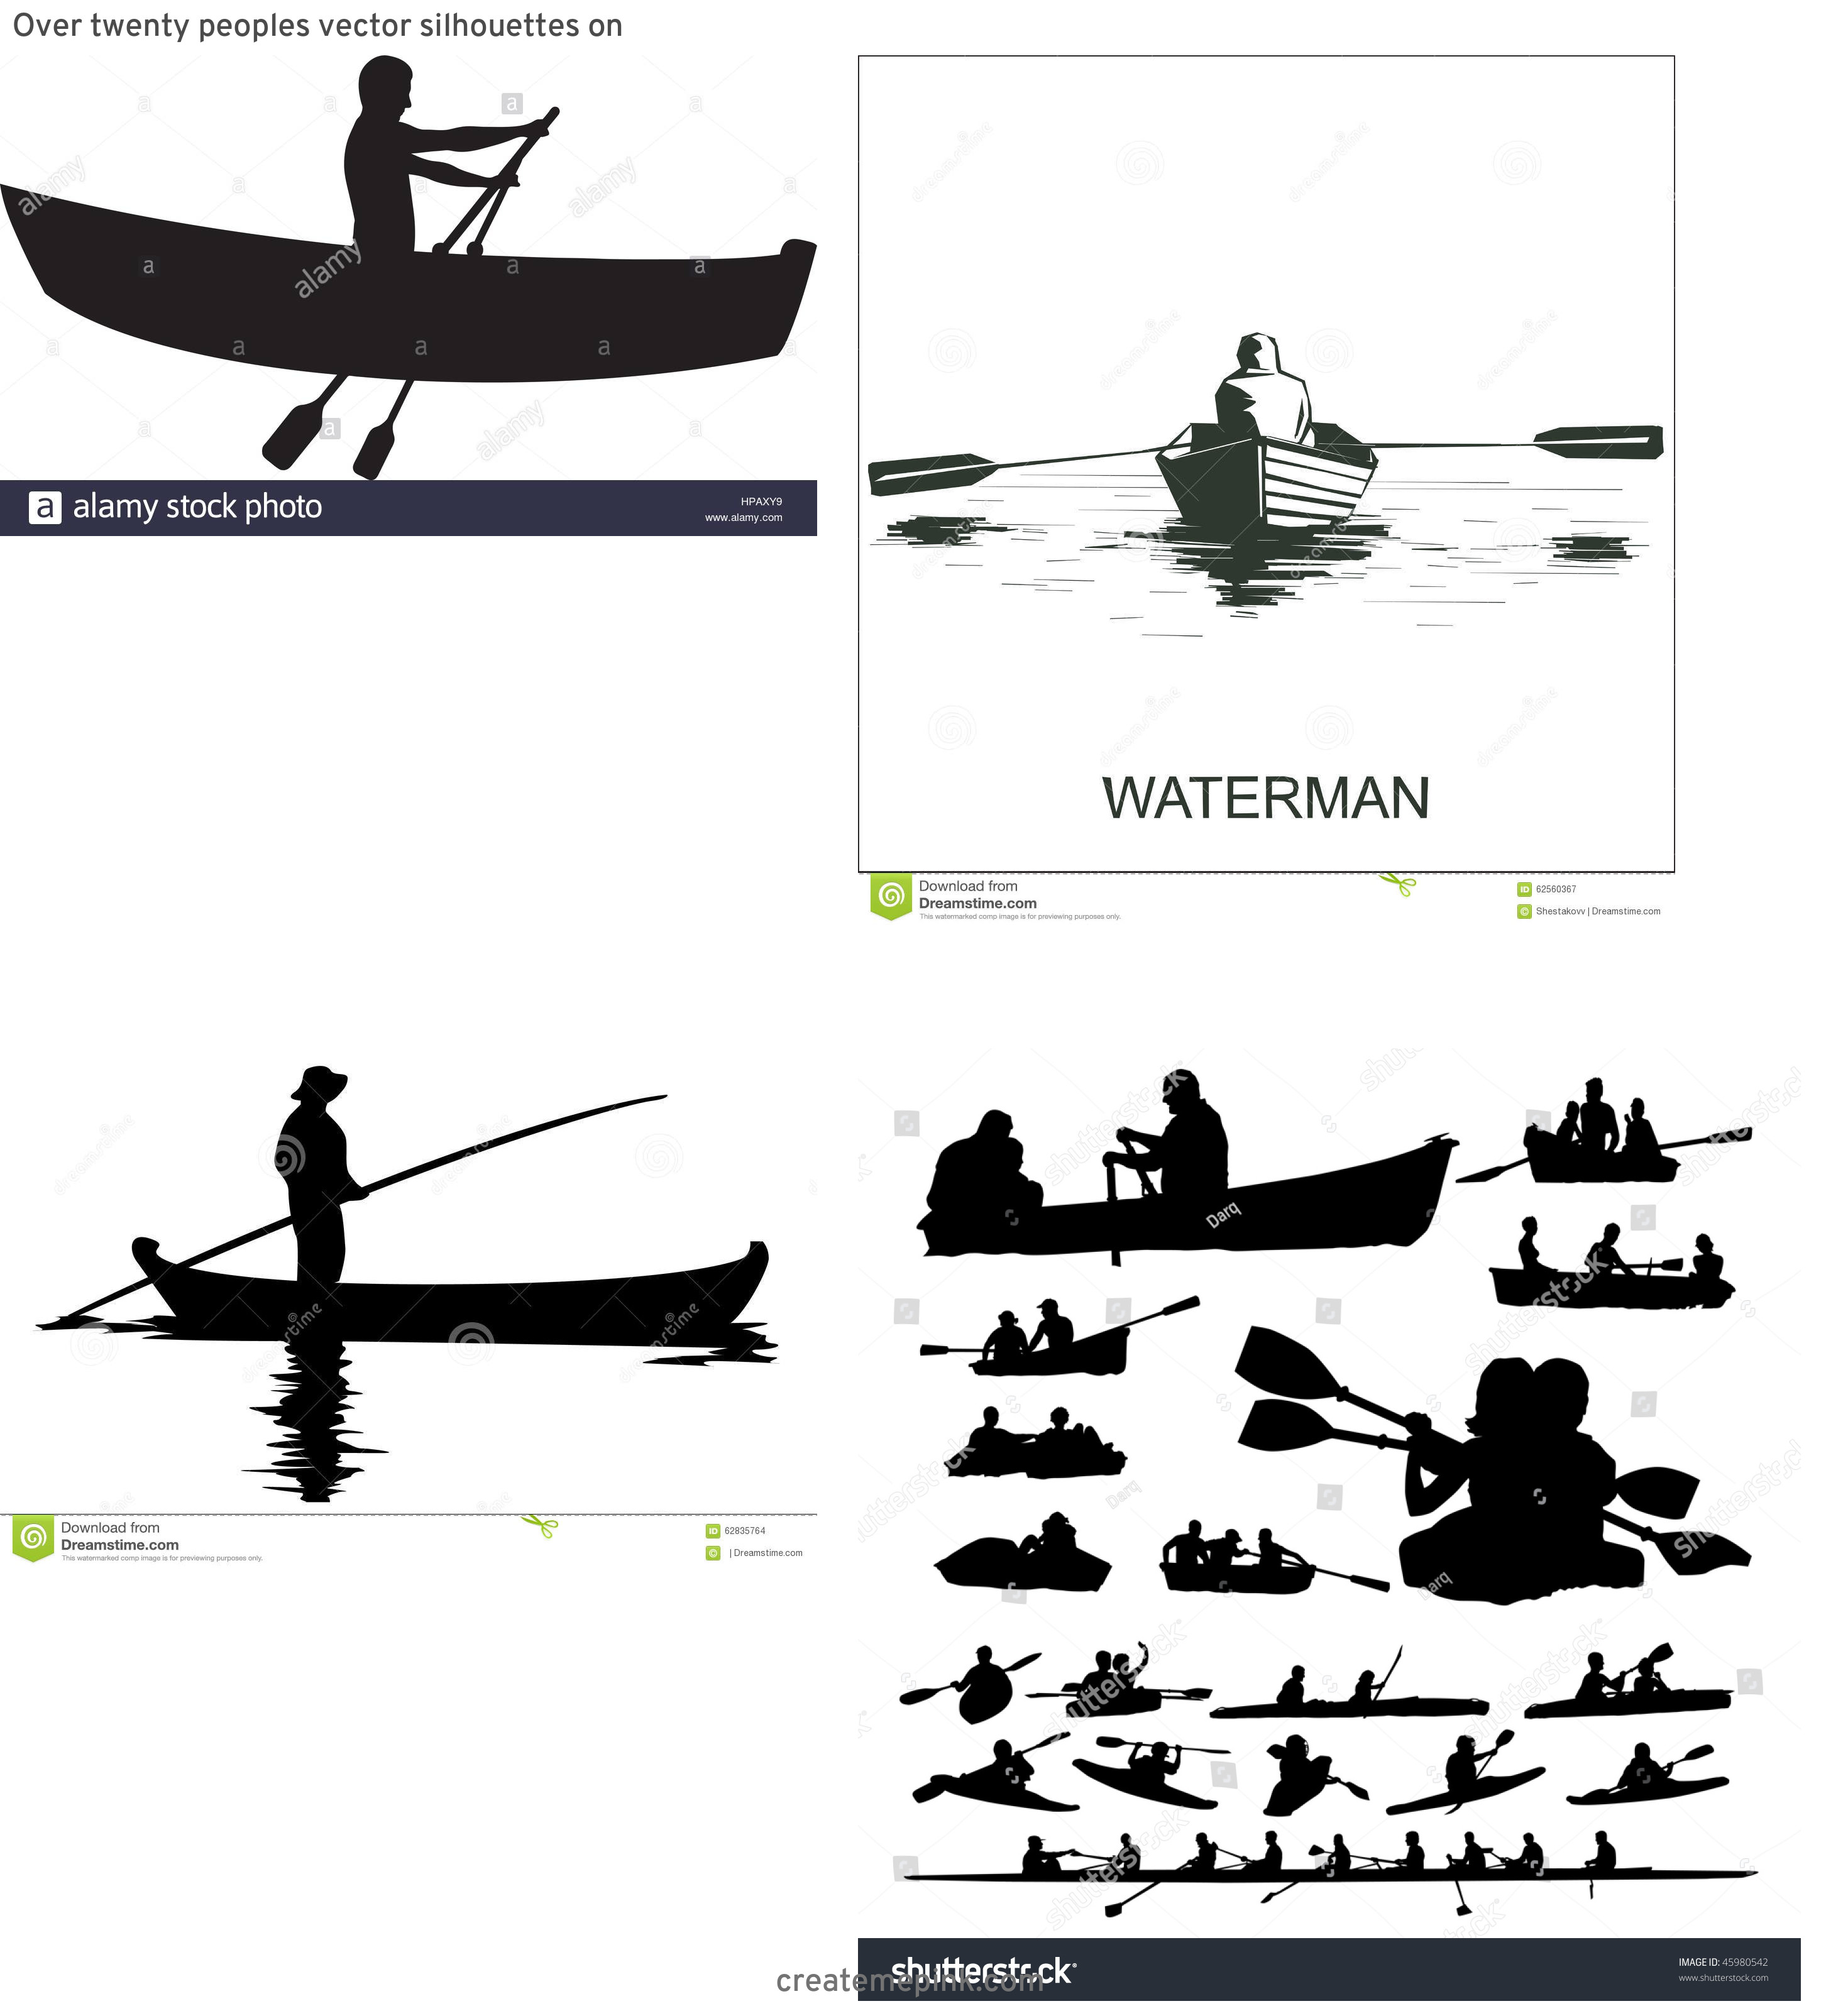 Row Boat Vector Sillohettes: Over Twenty Peoples Vector Silhouettes On